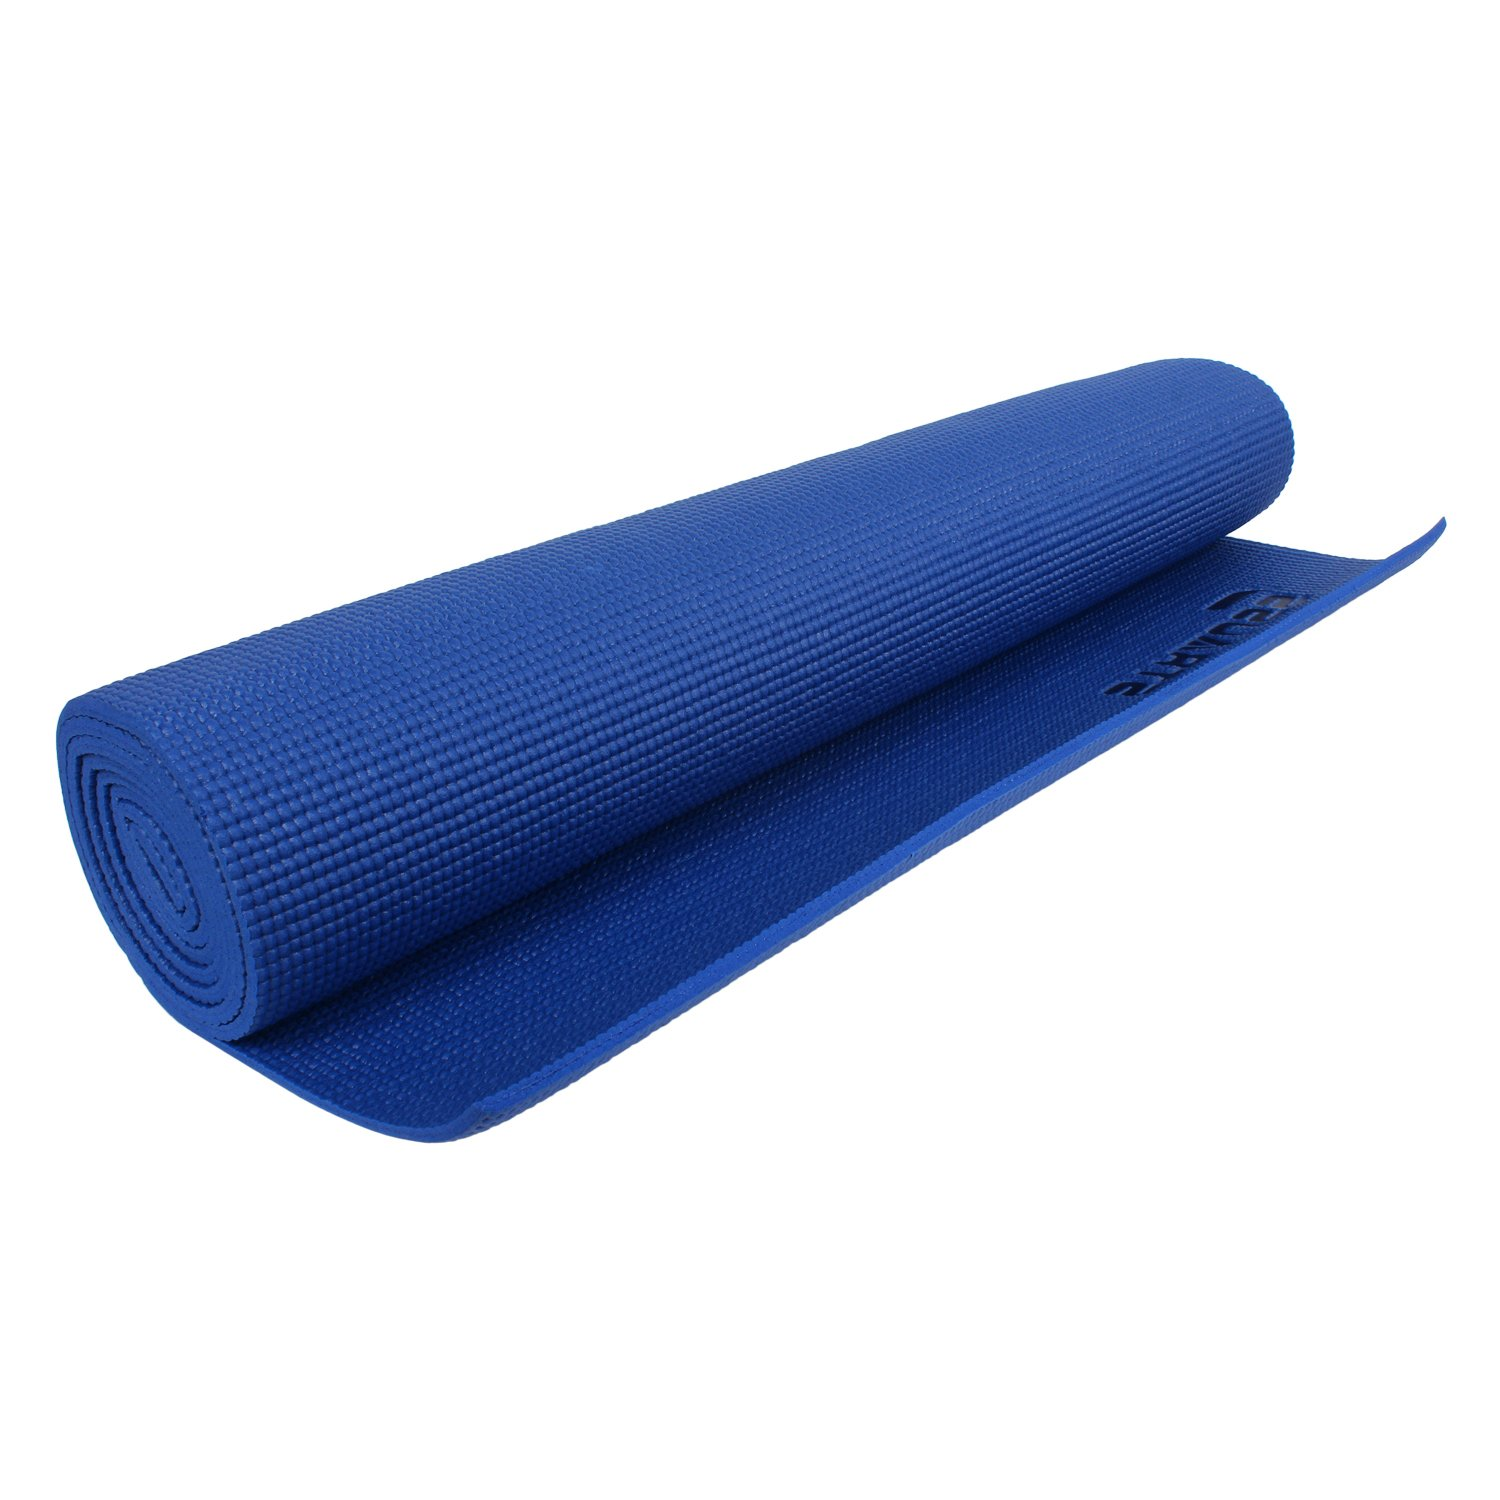 tumbling gymnastics training incline solid mats foam diy pin gym wedge mat triangle